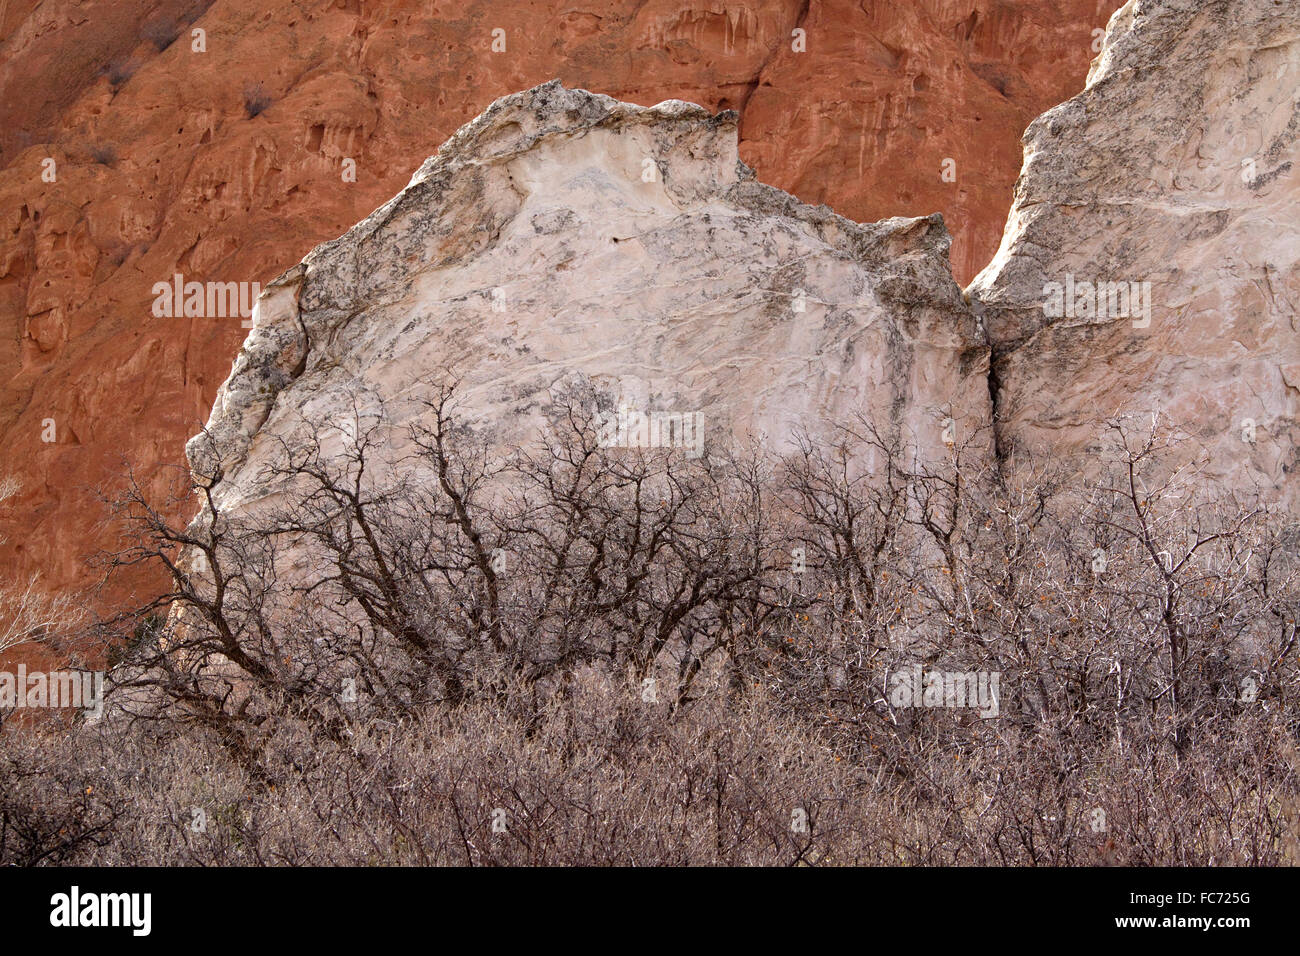 The White Lyons formation sandstone of White Rock contrasts against the red rocks of the Red Lyons formation sandstone - Stock Image